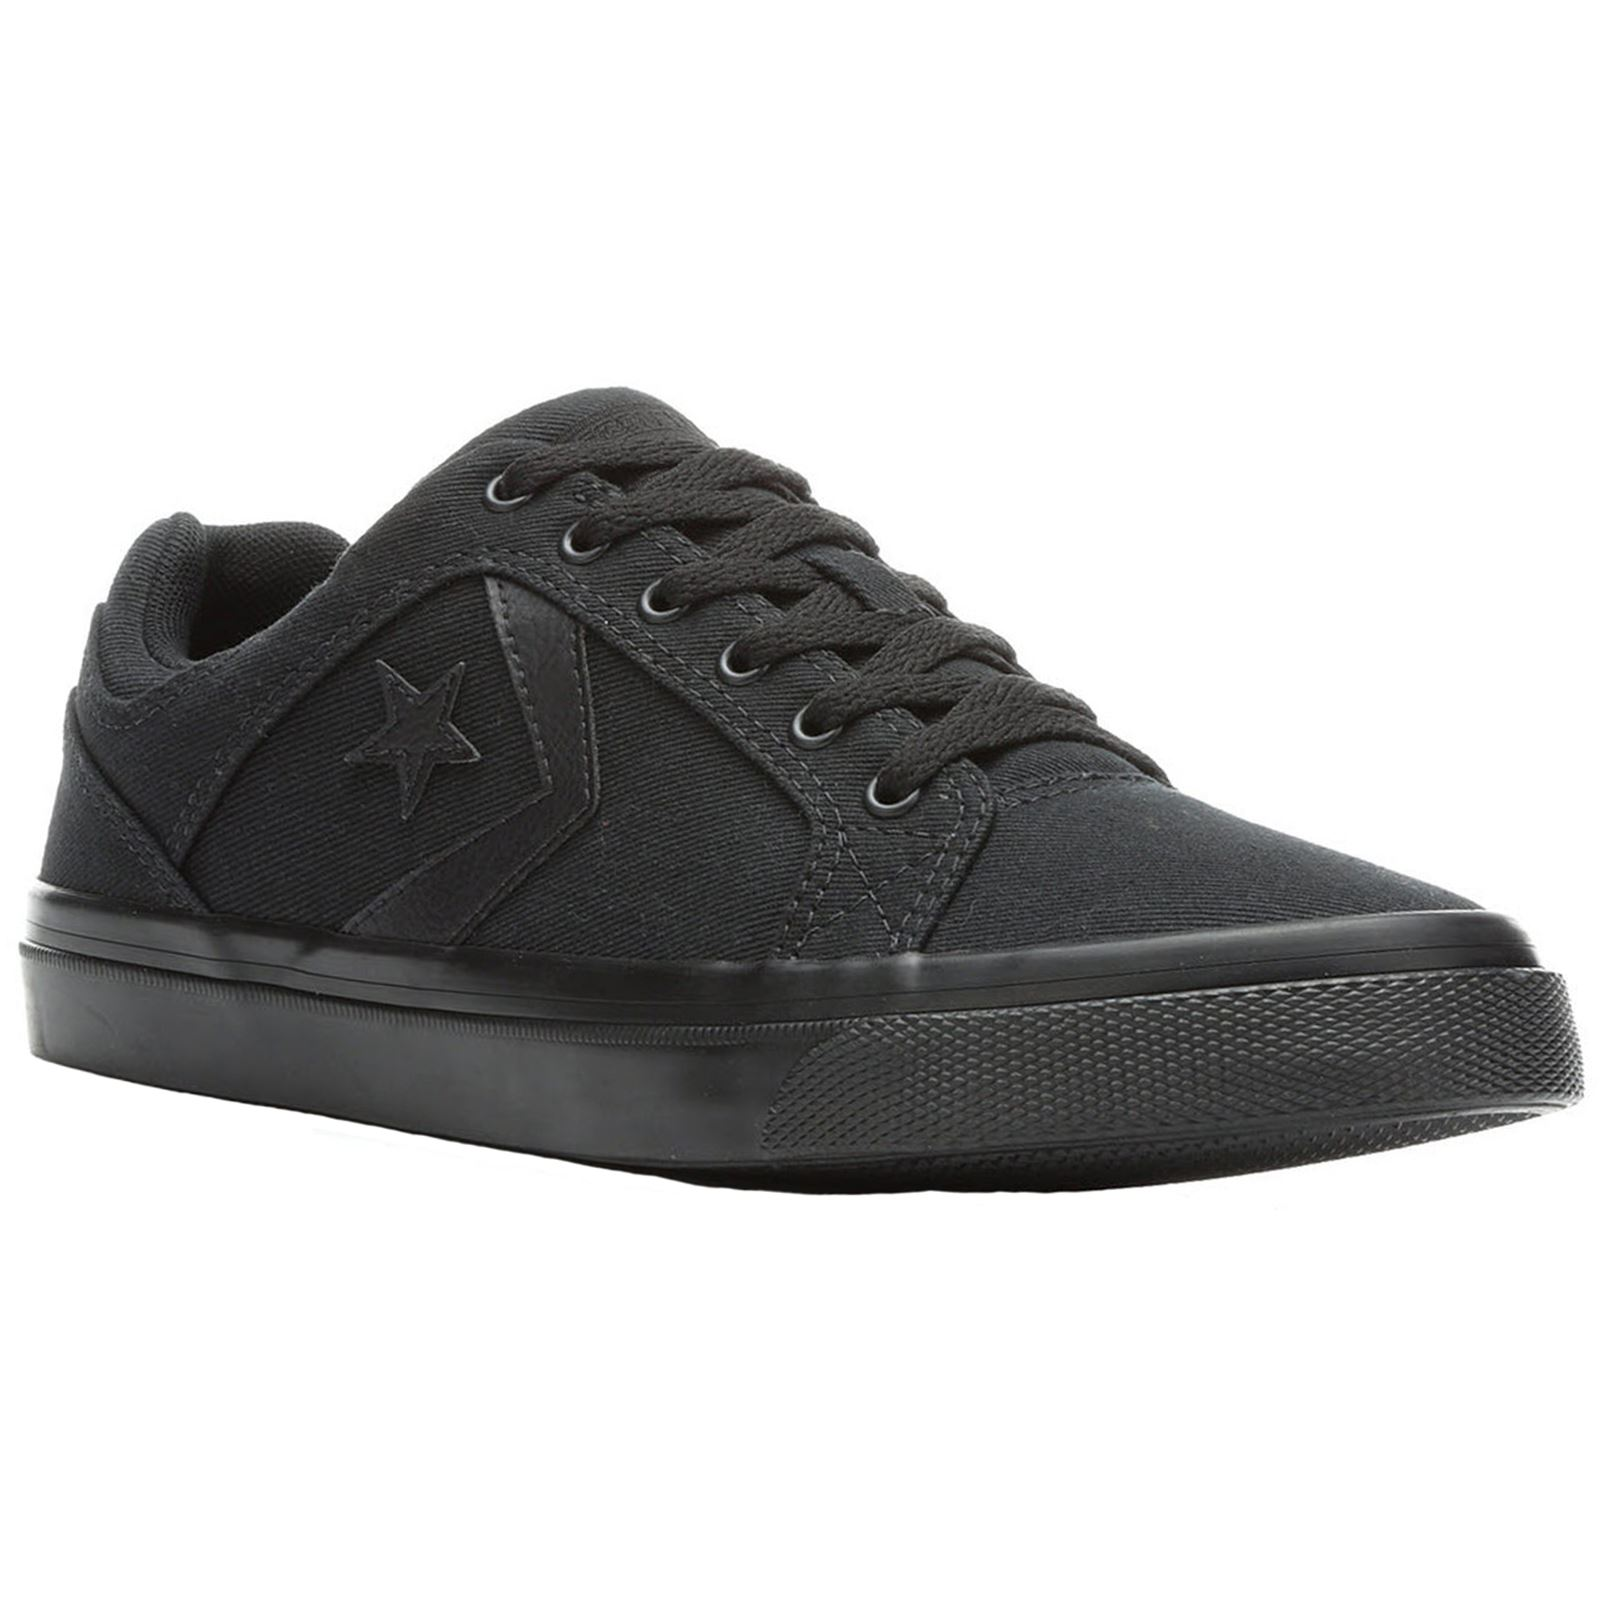 4b0b5396761518 Converse El Distrito Ox Black Mens Canvas Low-top Lace-Up Sneakers Trainers